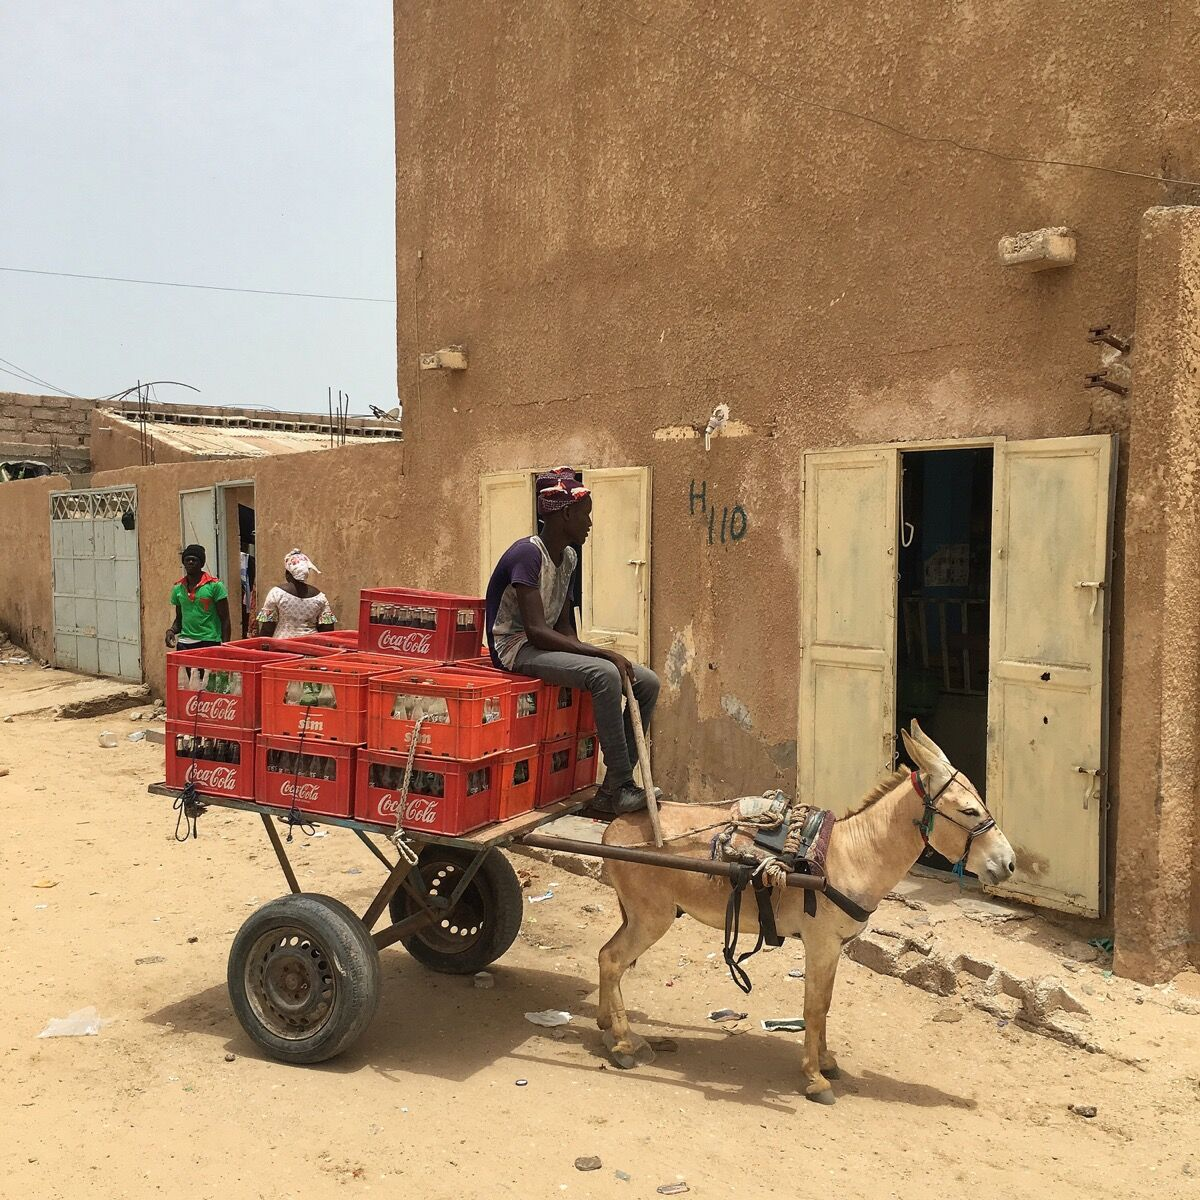 Aziz makes Coca-Cola deliveries with his donkey in Nouakchott, Mauritania. Photo by @dcoreraphotography.